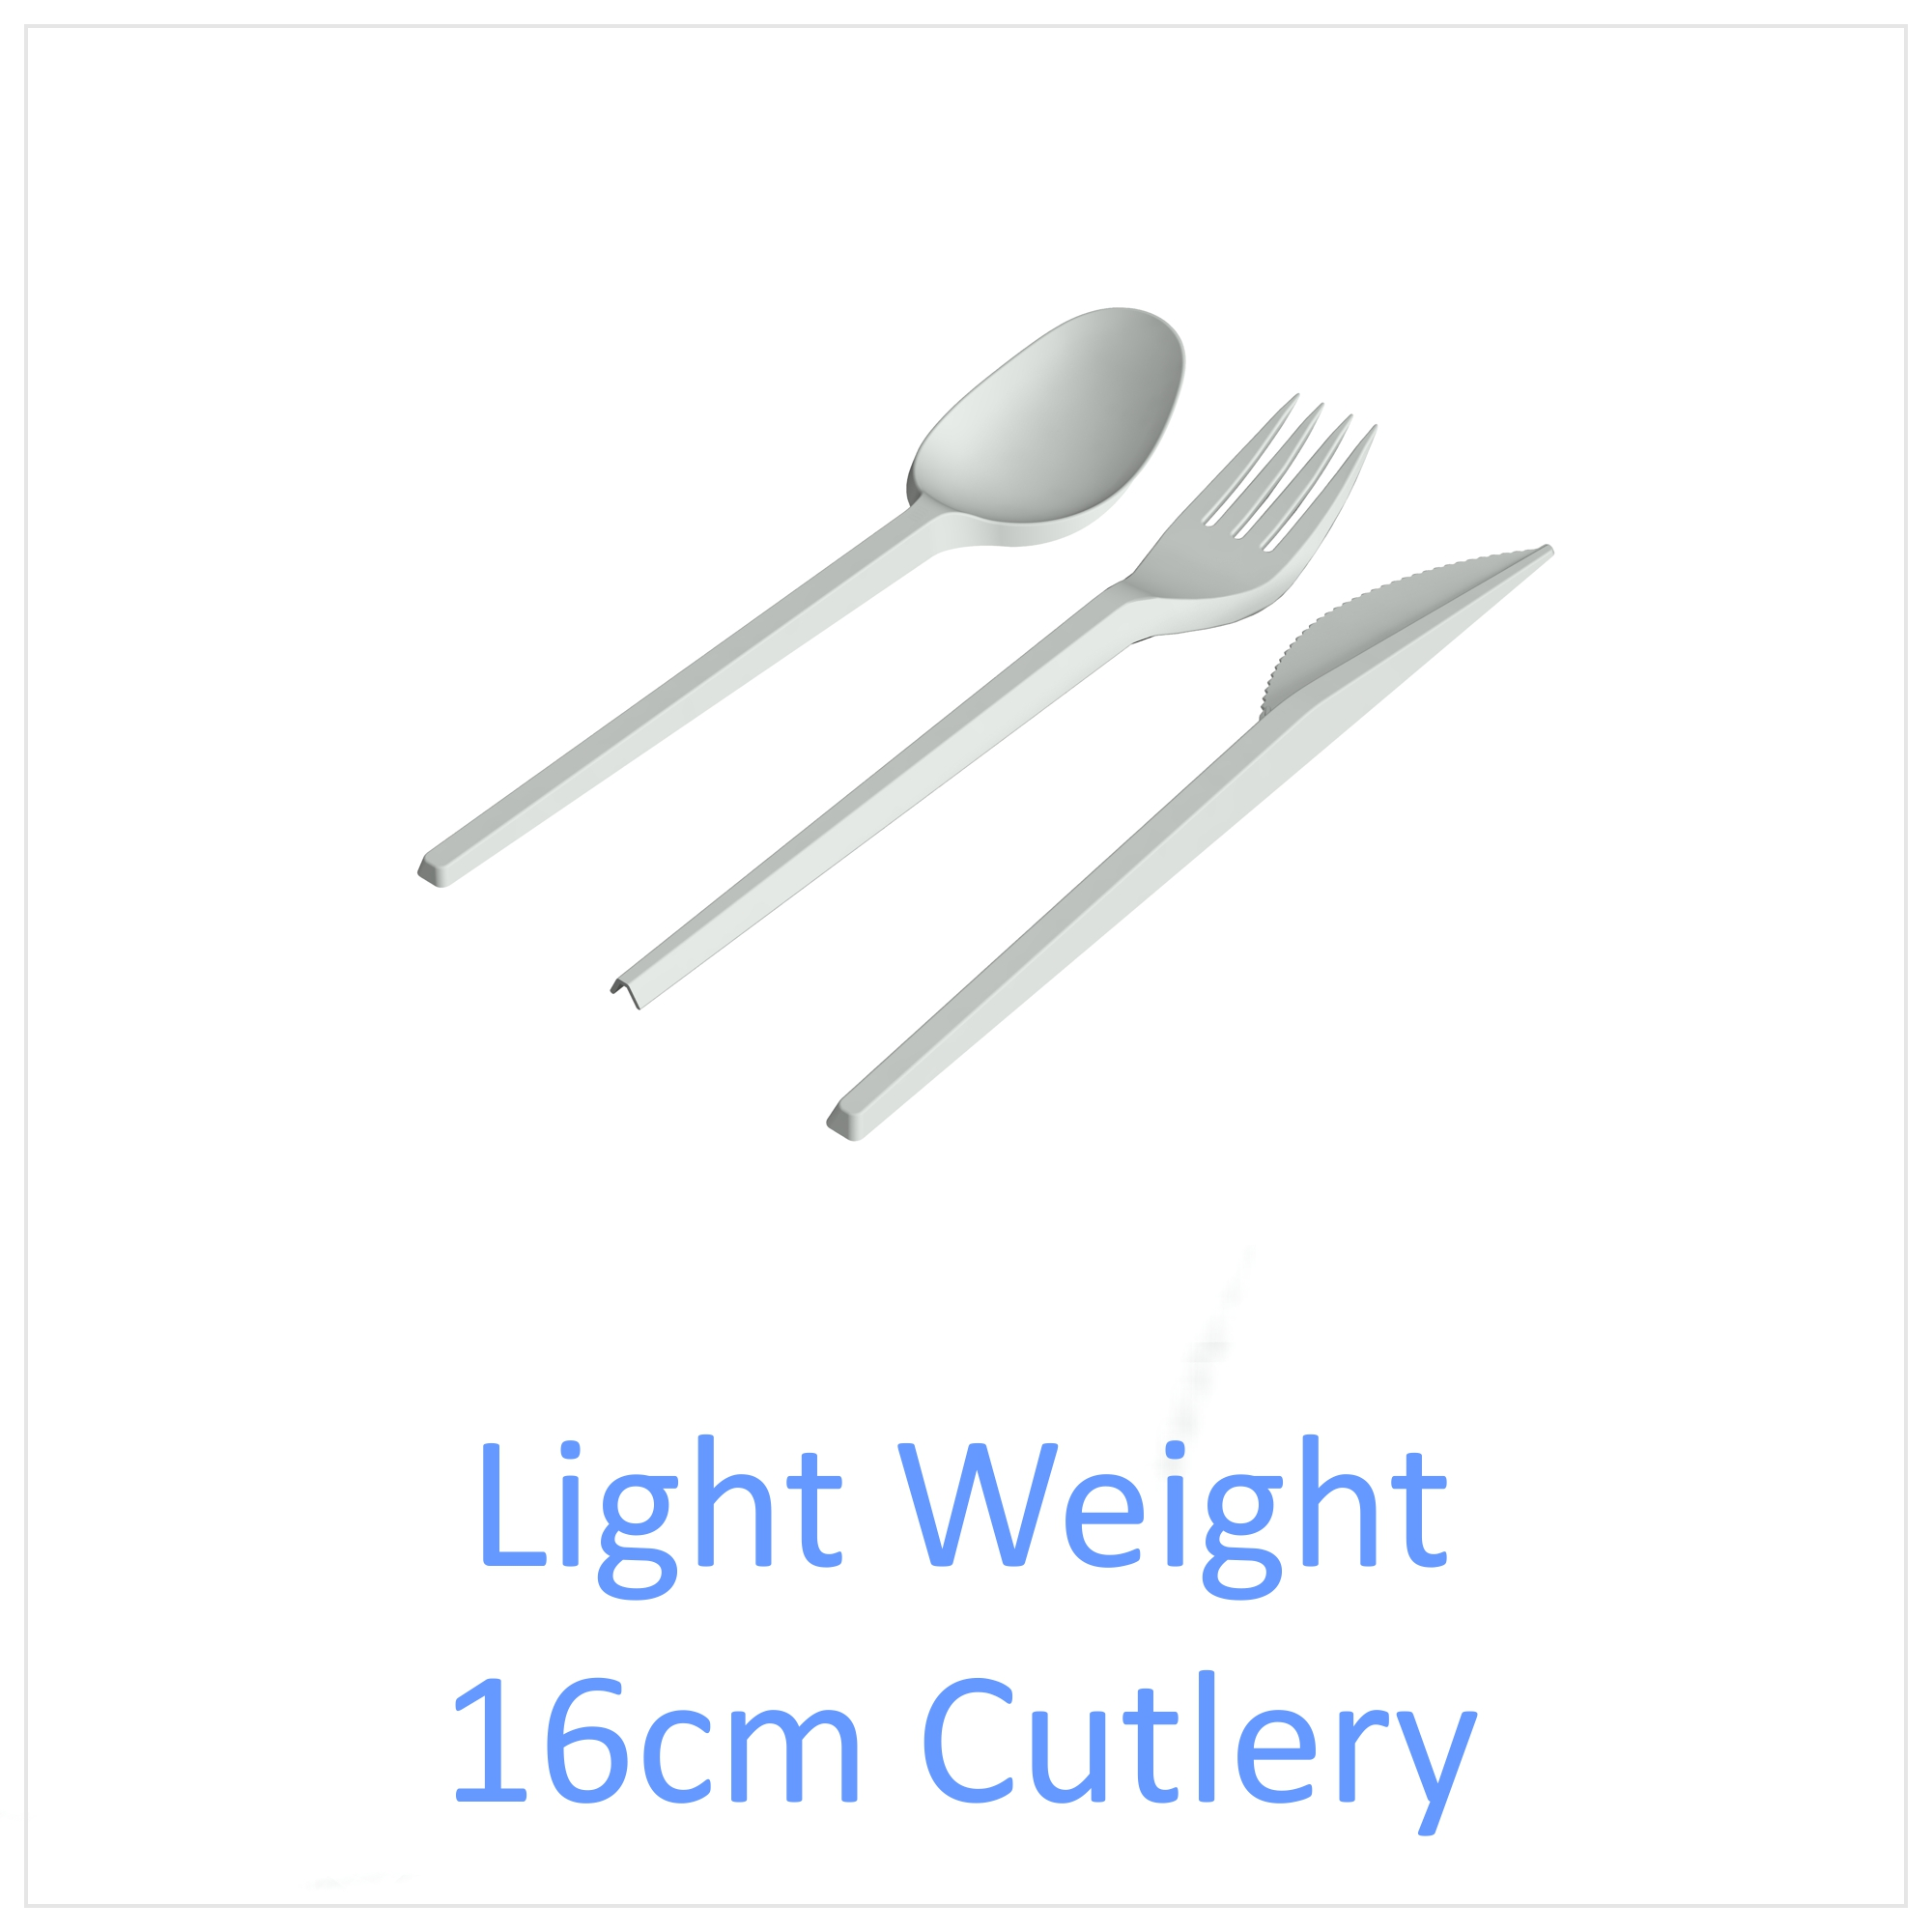 Light Weight Cutlery